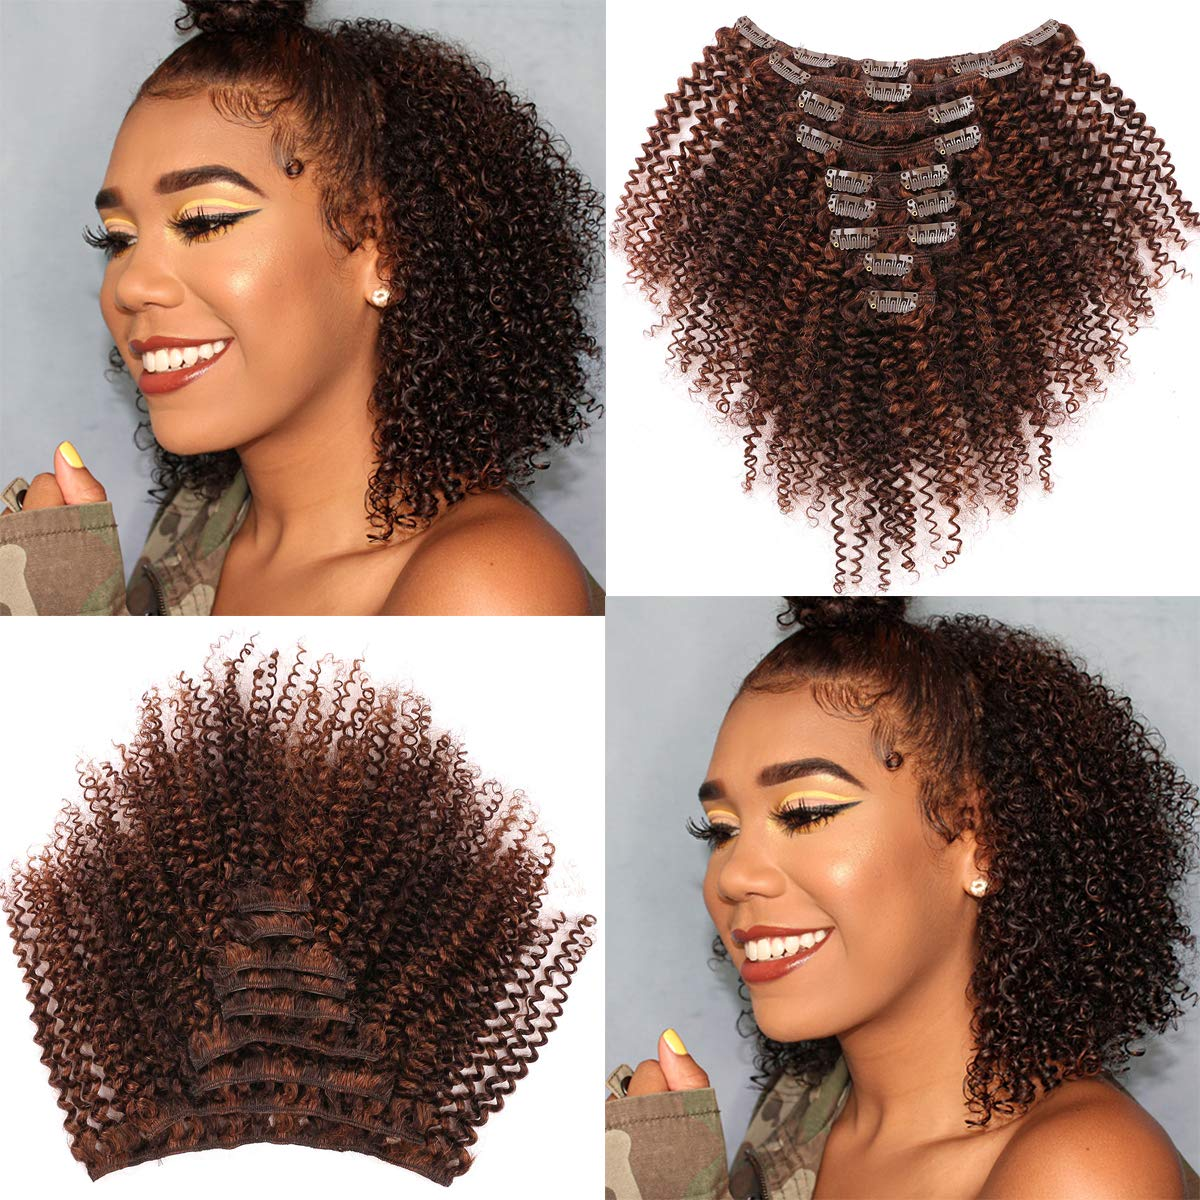 Amazon Com Bohemian Curly Clip In Hair Extensions Human Hair 3c 4a Short Afro Kinky Curly Clip Ins 12 Inch Thick Remy Hair Extensions For Black Women 9pcs 100g 20 Clips Full